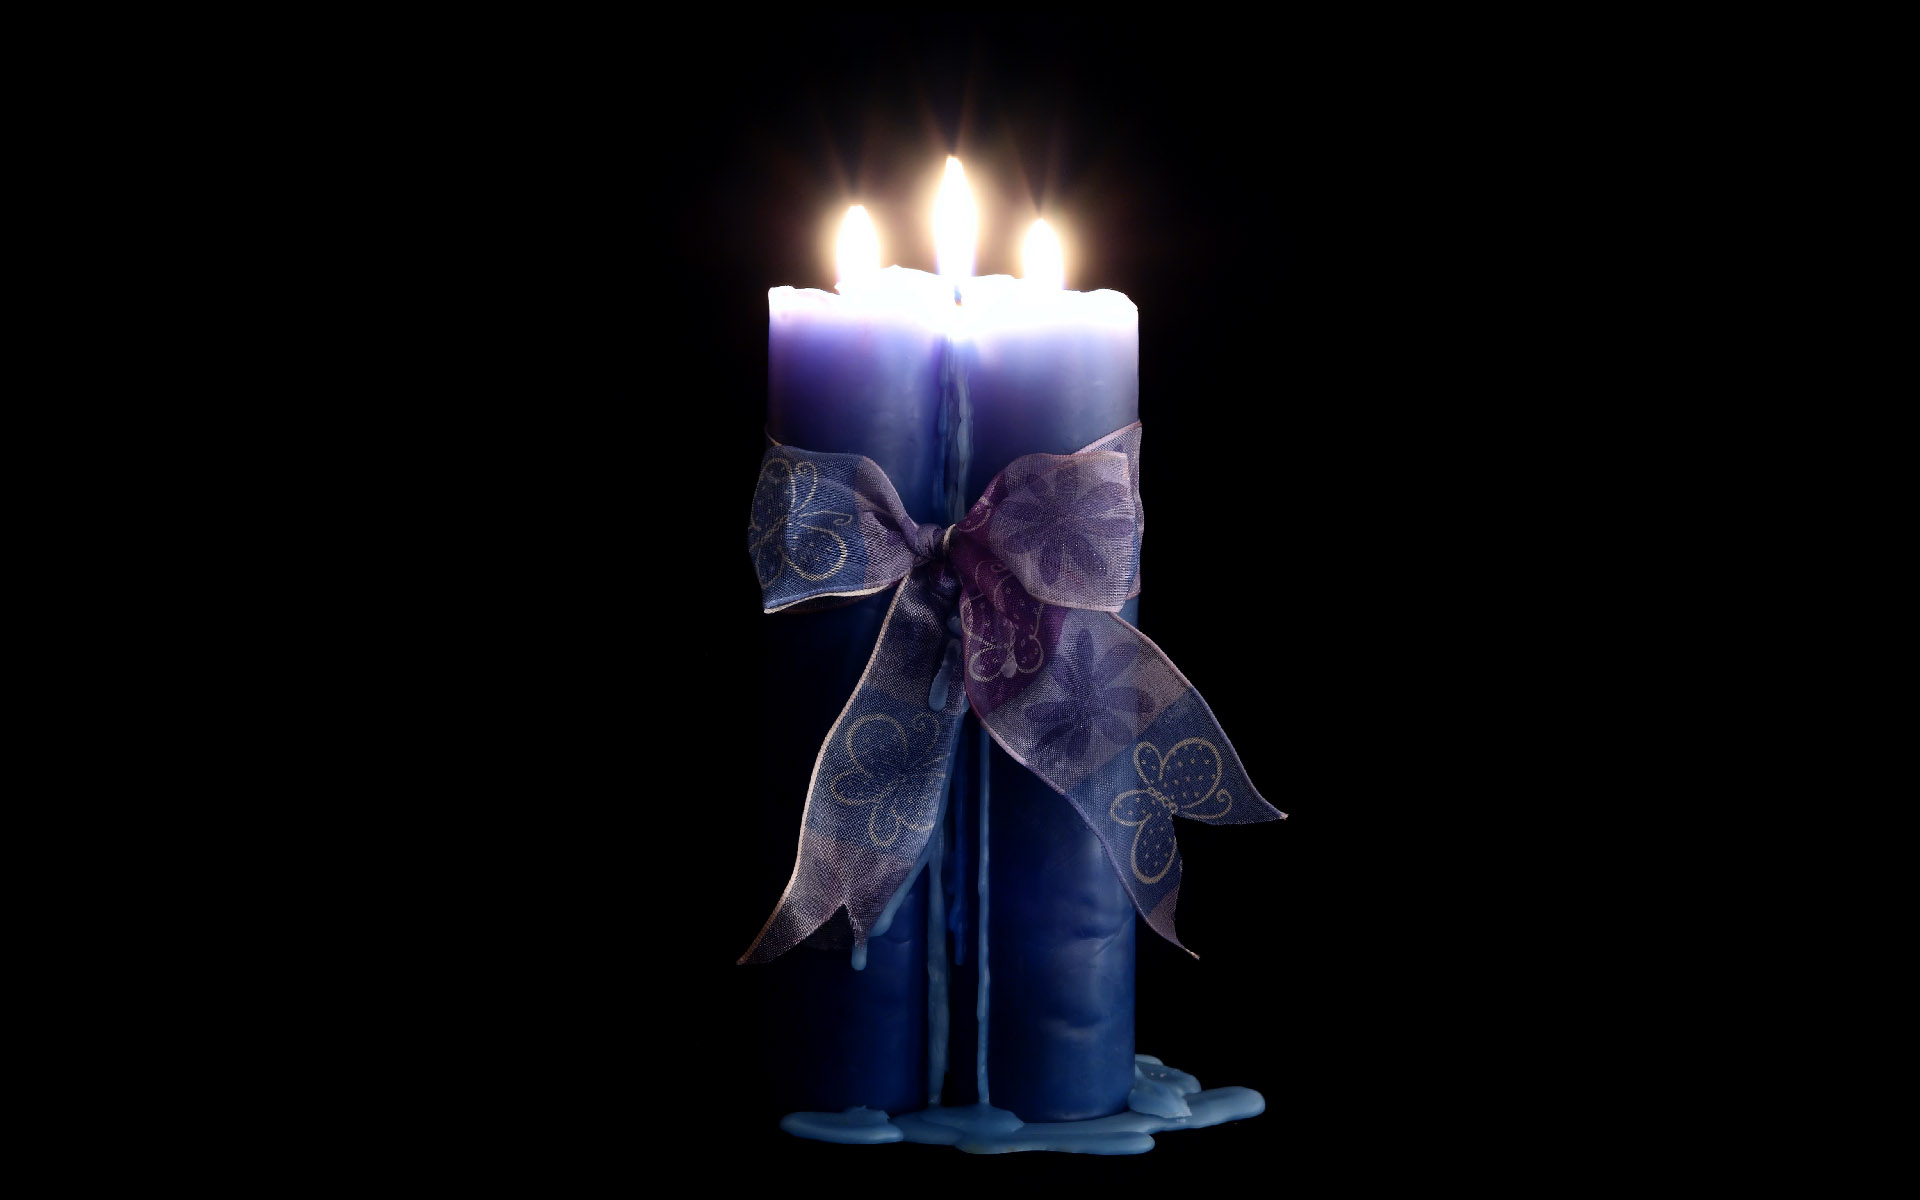 Candle wallpaper 9948